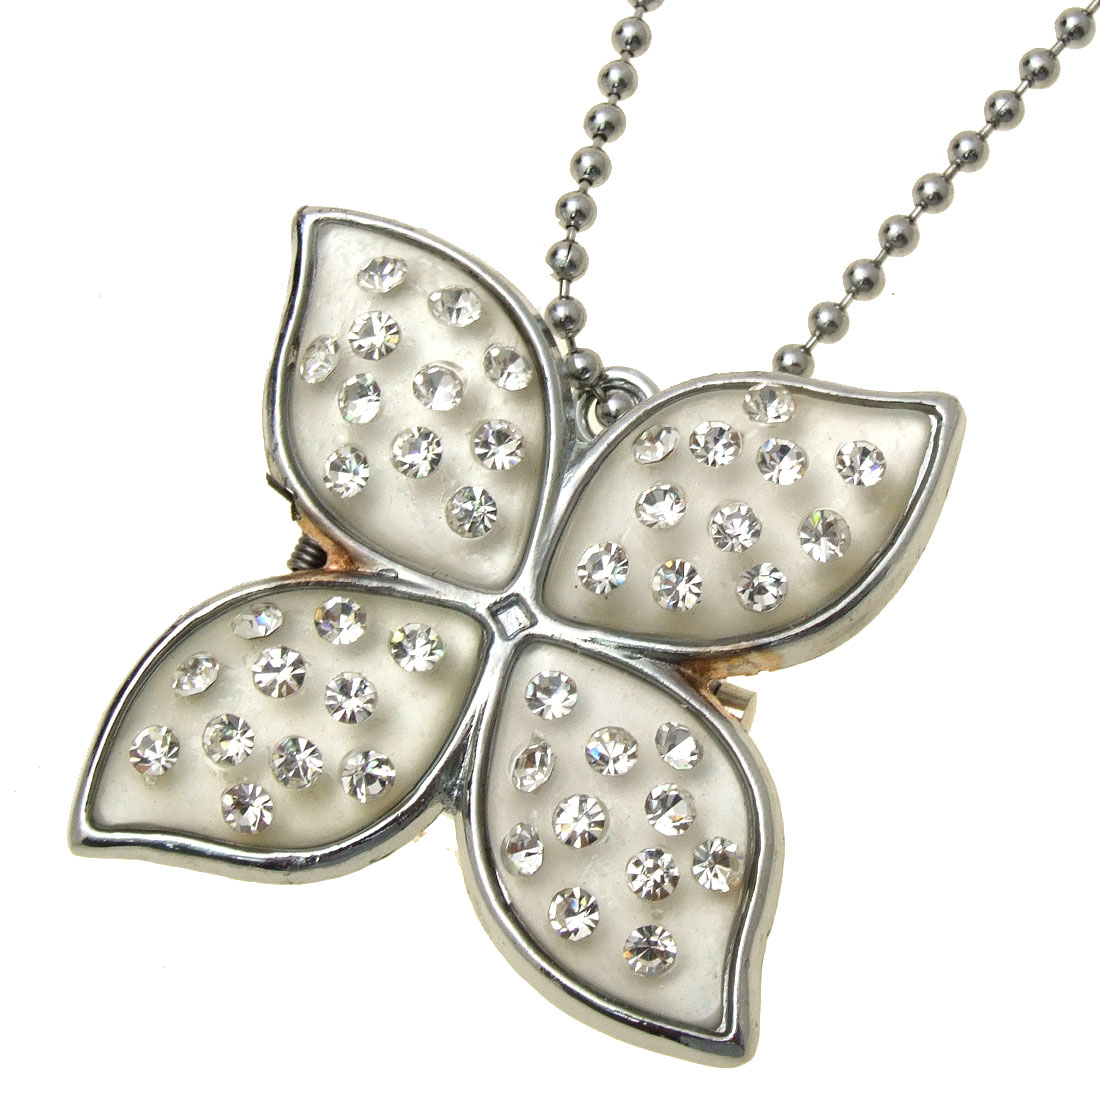 Fashion Jewelry Rhinestone Flower Pendant Silvery Chain Necklace Girl's Watch